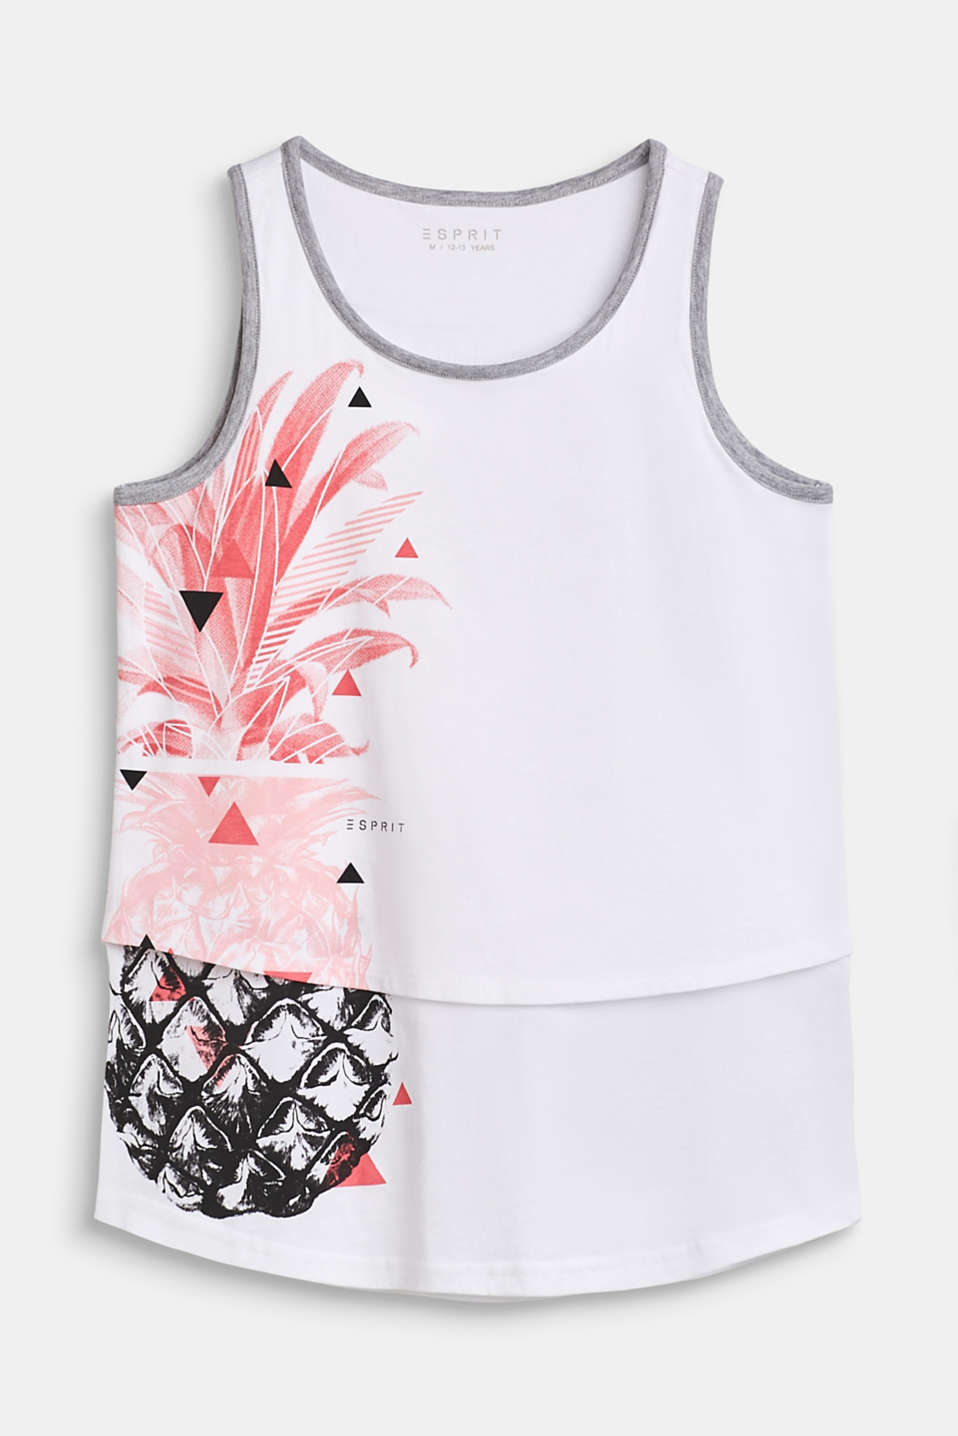 Esprit - Vest top in a layered style, 100% cotton